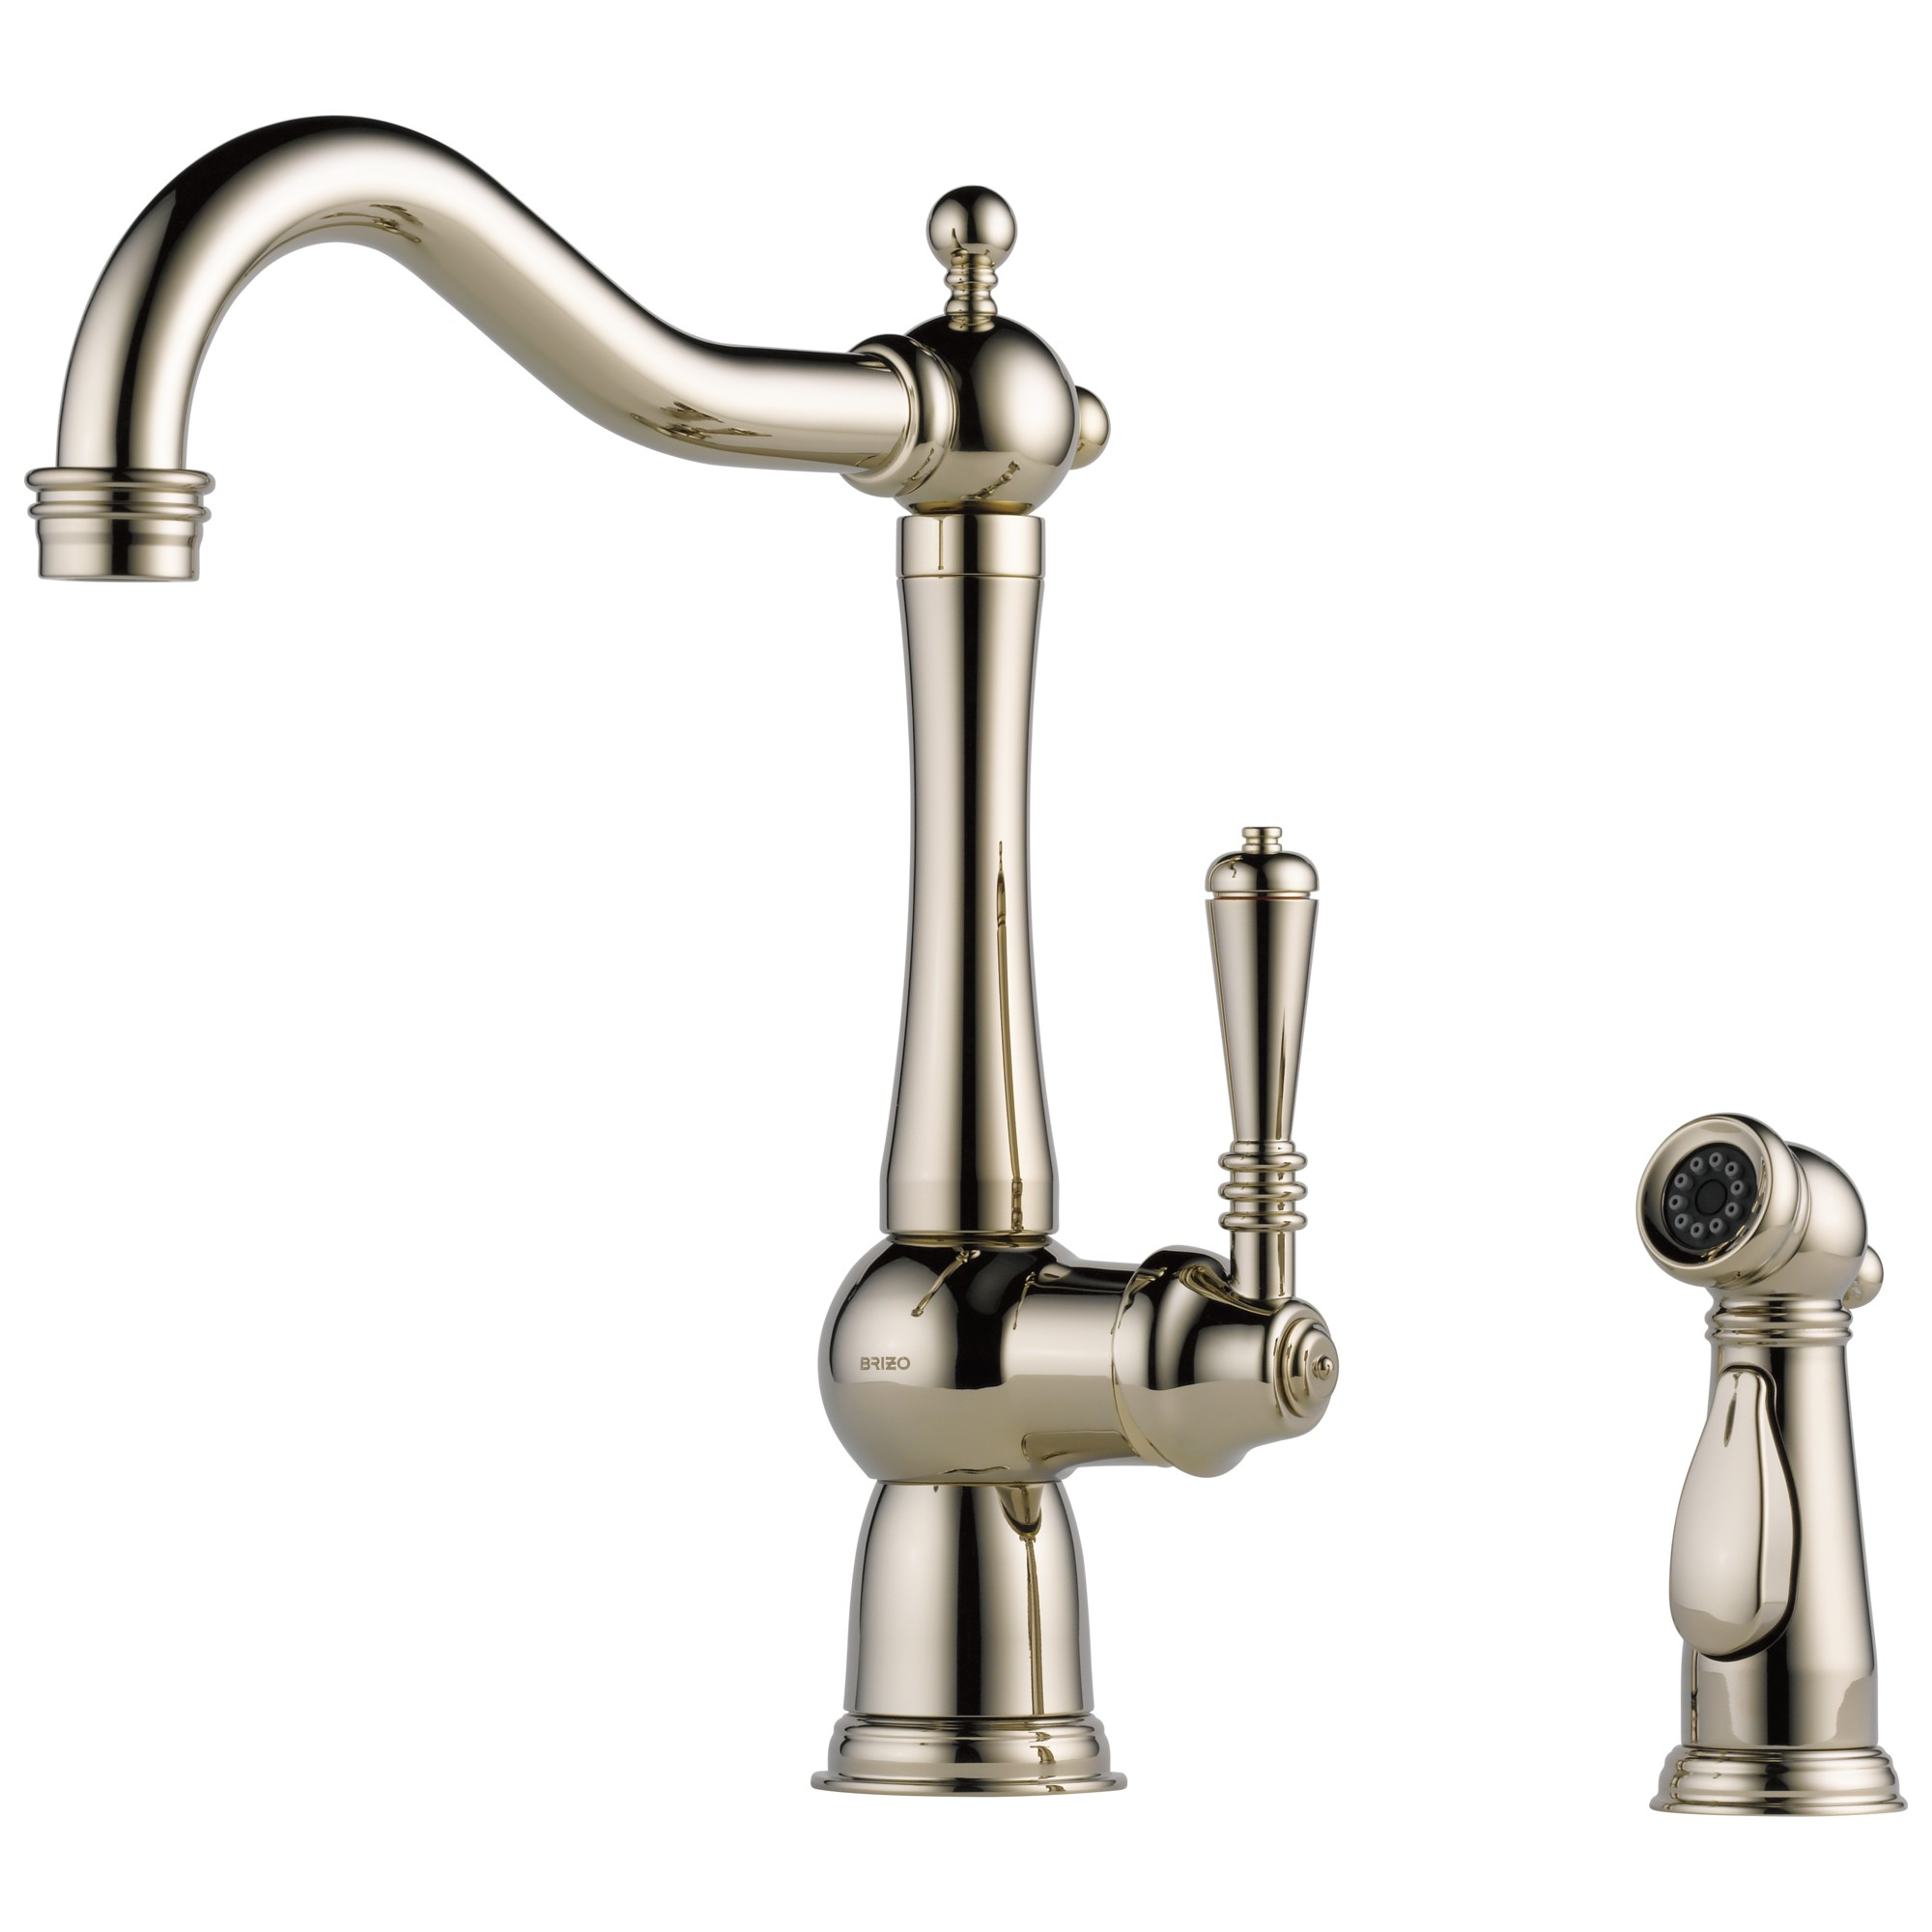 Brizo 61136LF-PN Tresa Single Handle Kitchen Faucet with Spray - Polished Nickel